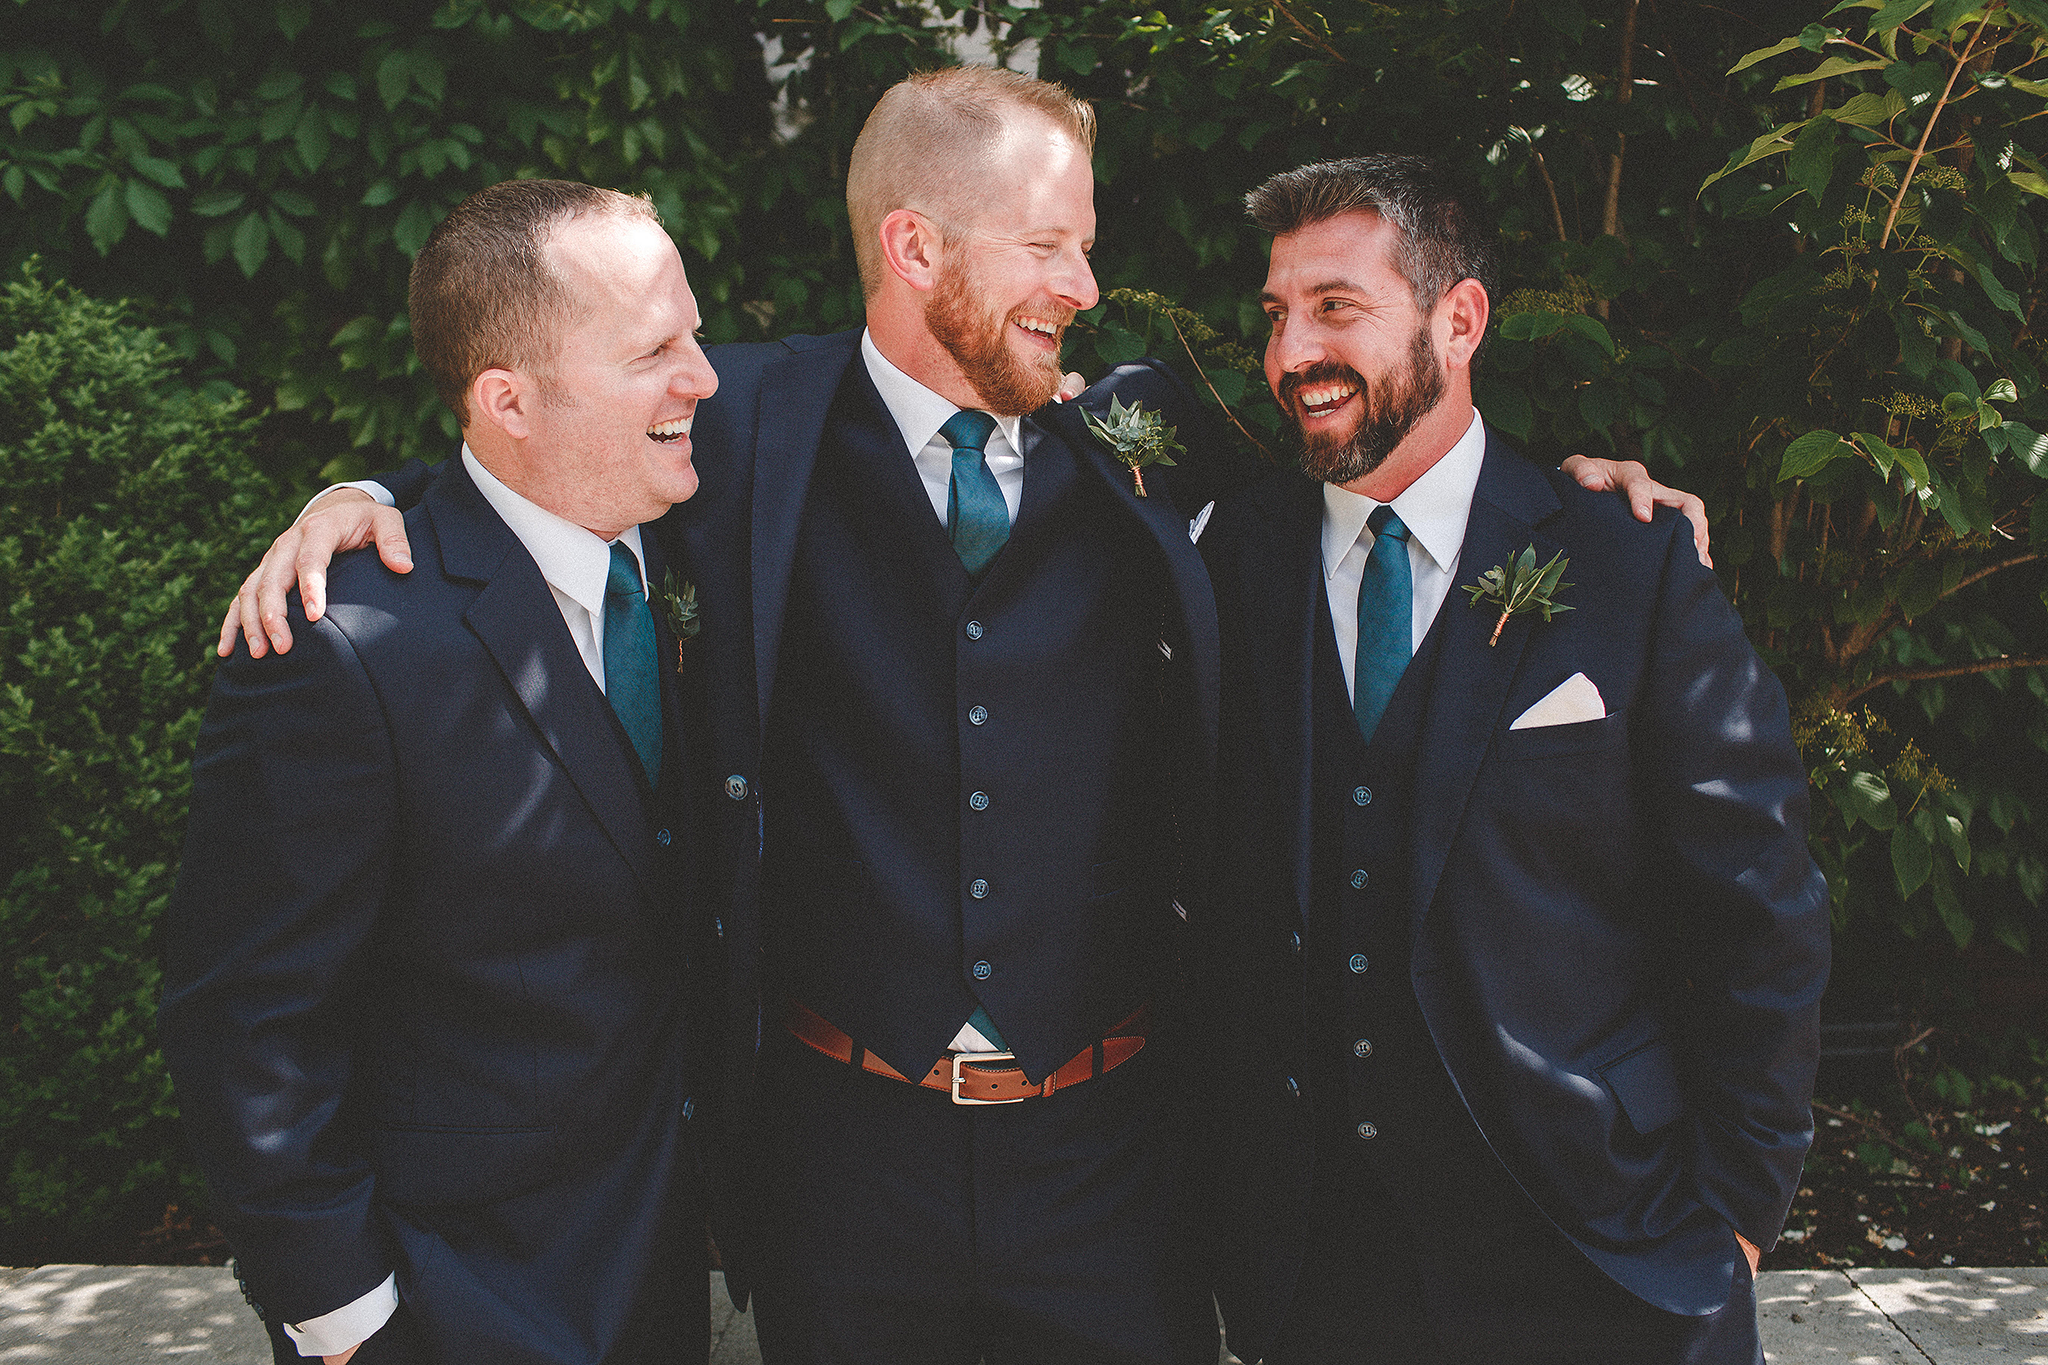 groom/groomsmen laughing picture | the ivy house milwaukee wedding photographer | chrissy deming